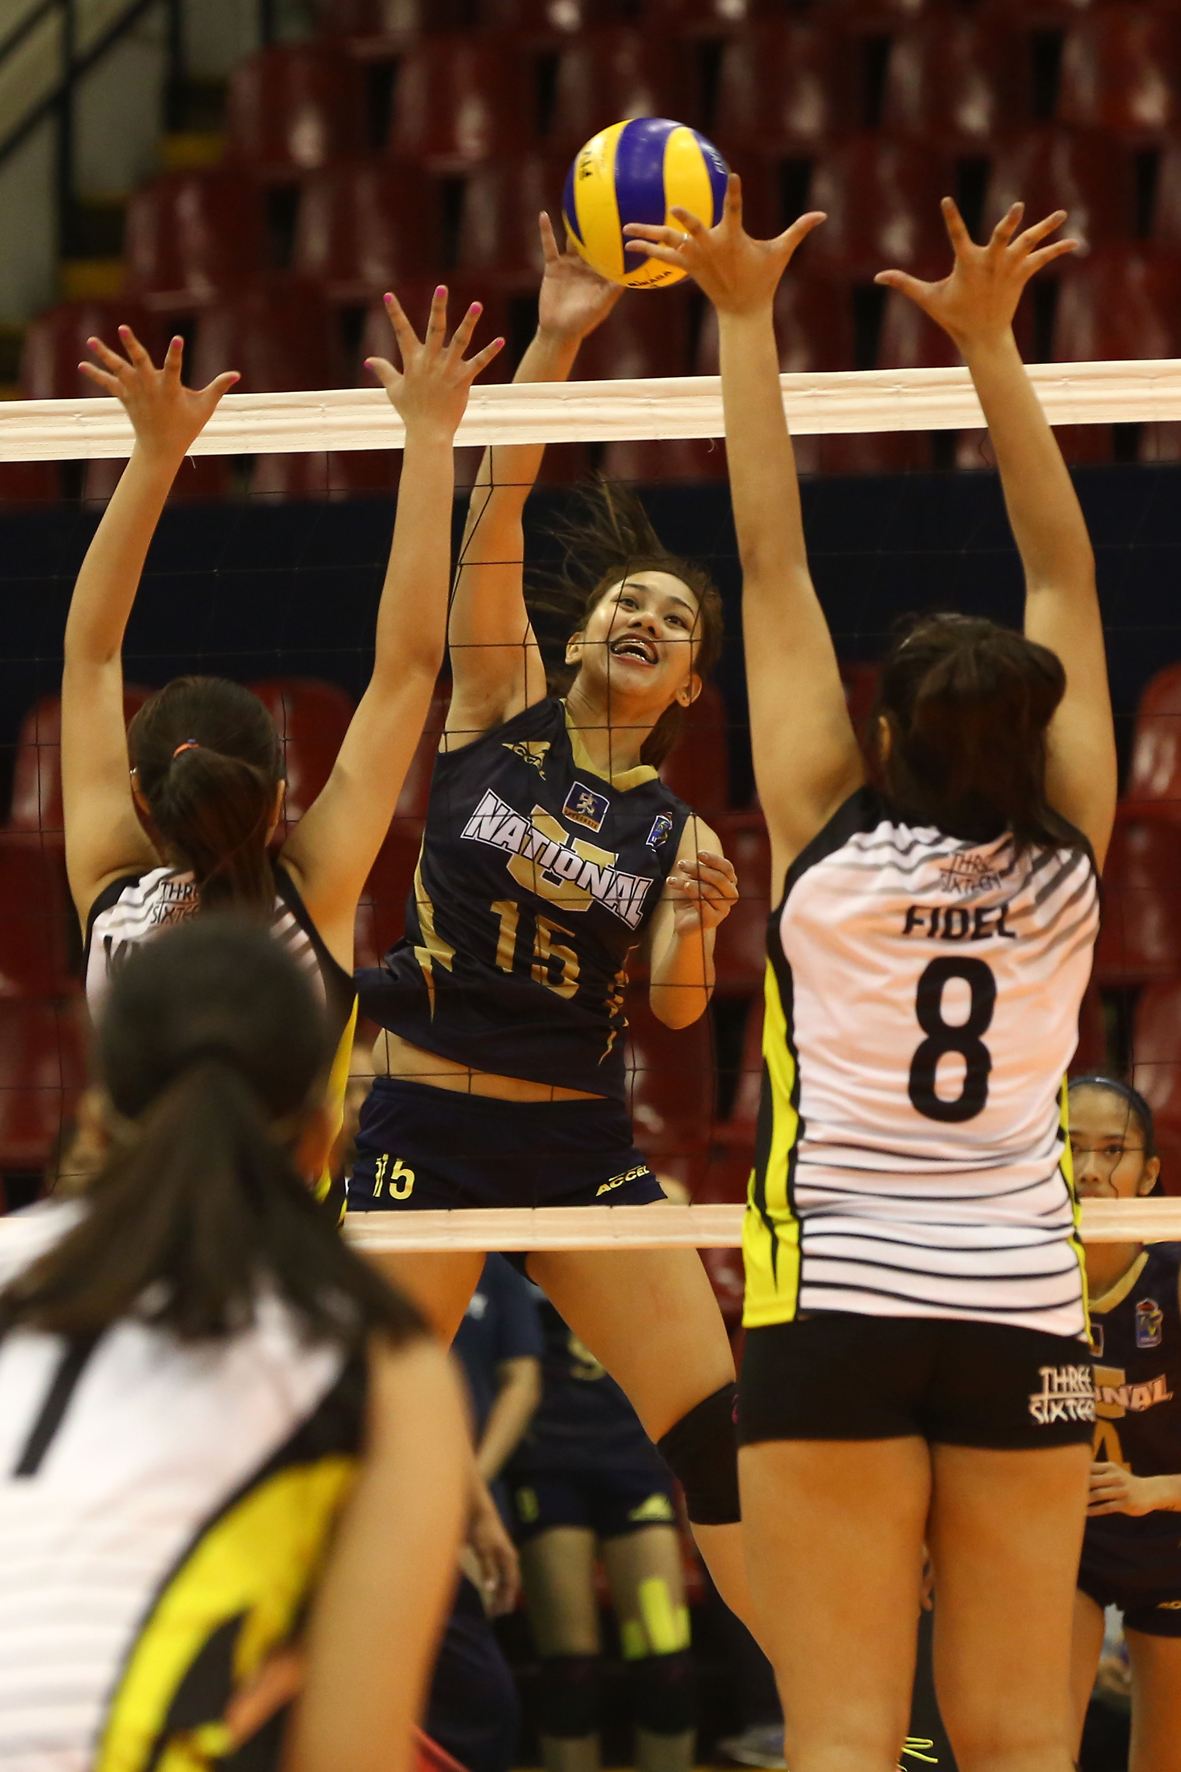 National U's Audrey Paran hammers in a kill against TIP's blockers, led by Rochelle Fidel (8) during their Shakey's V-League Collegiate Conference duel at the Philsports Arena.